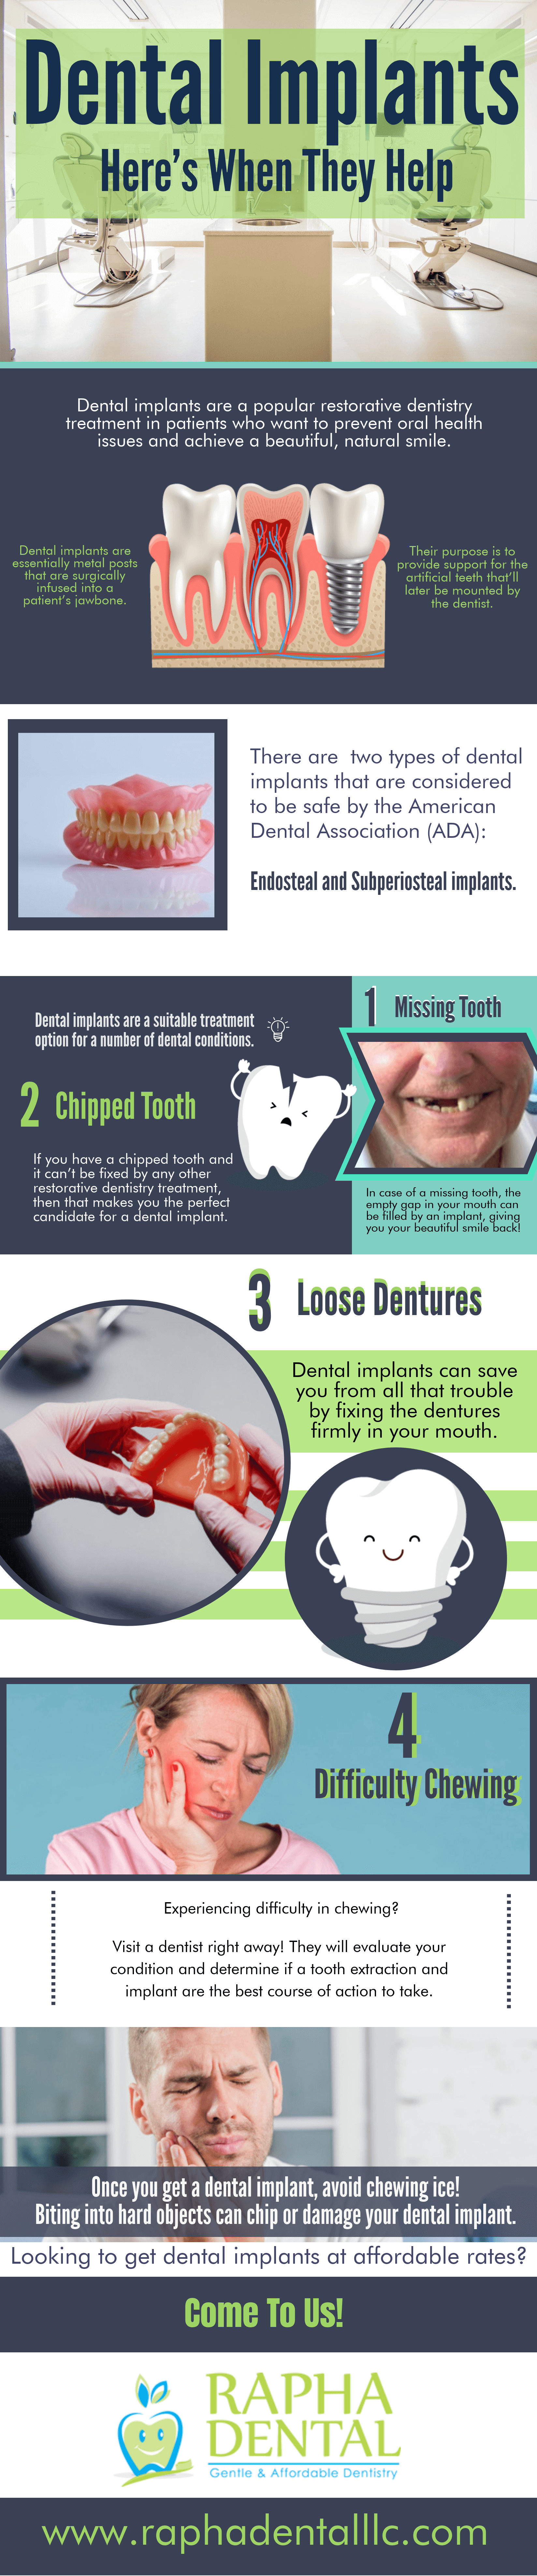 Dental Implants Here's When They Help